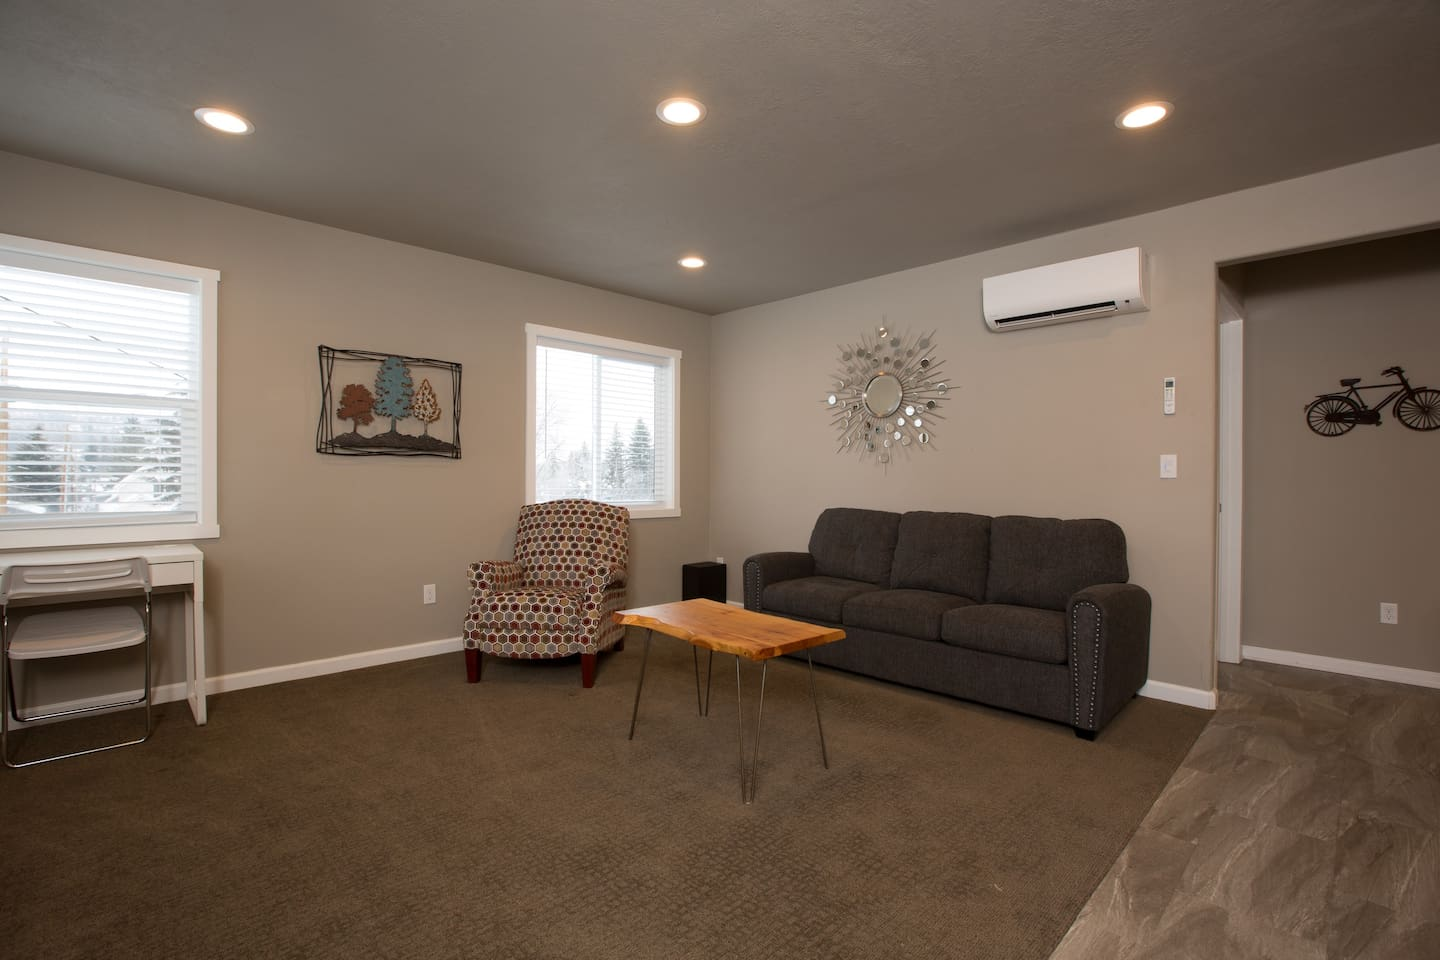 Living room with reclining chair and comfortable couch/hide-a-bed with memory foam mattress